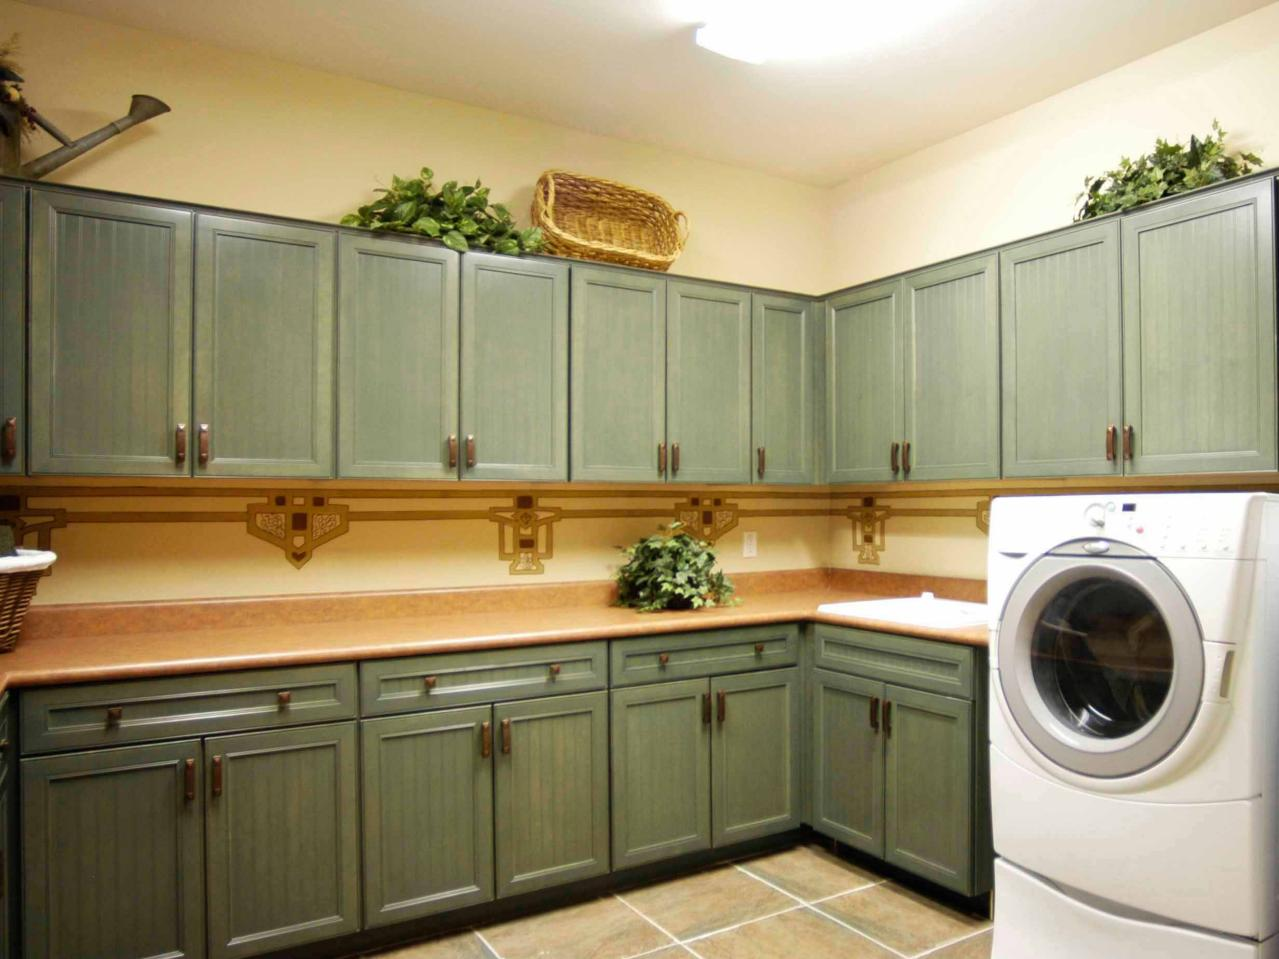 laundry room organization and storage ideas: pictures, options